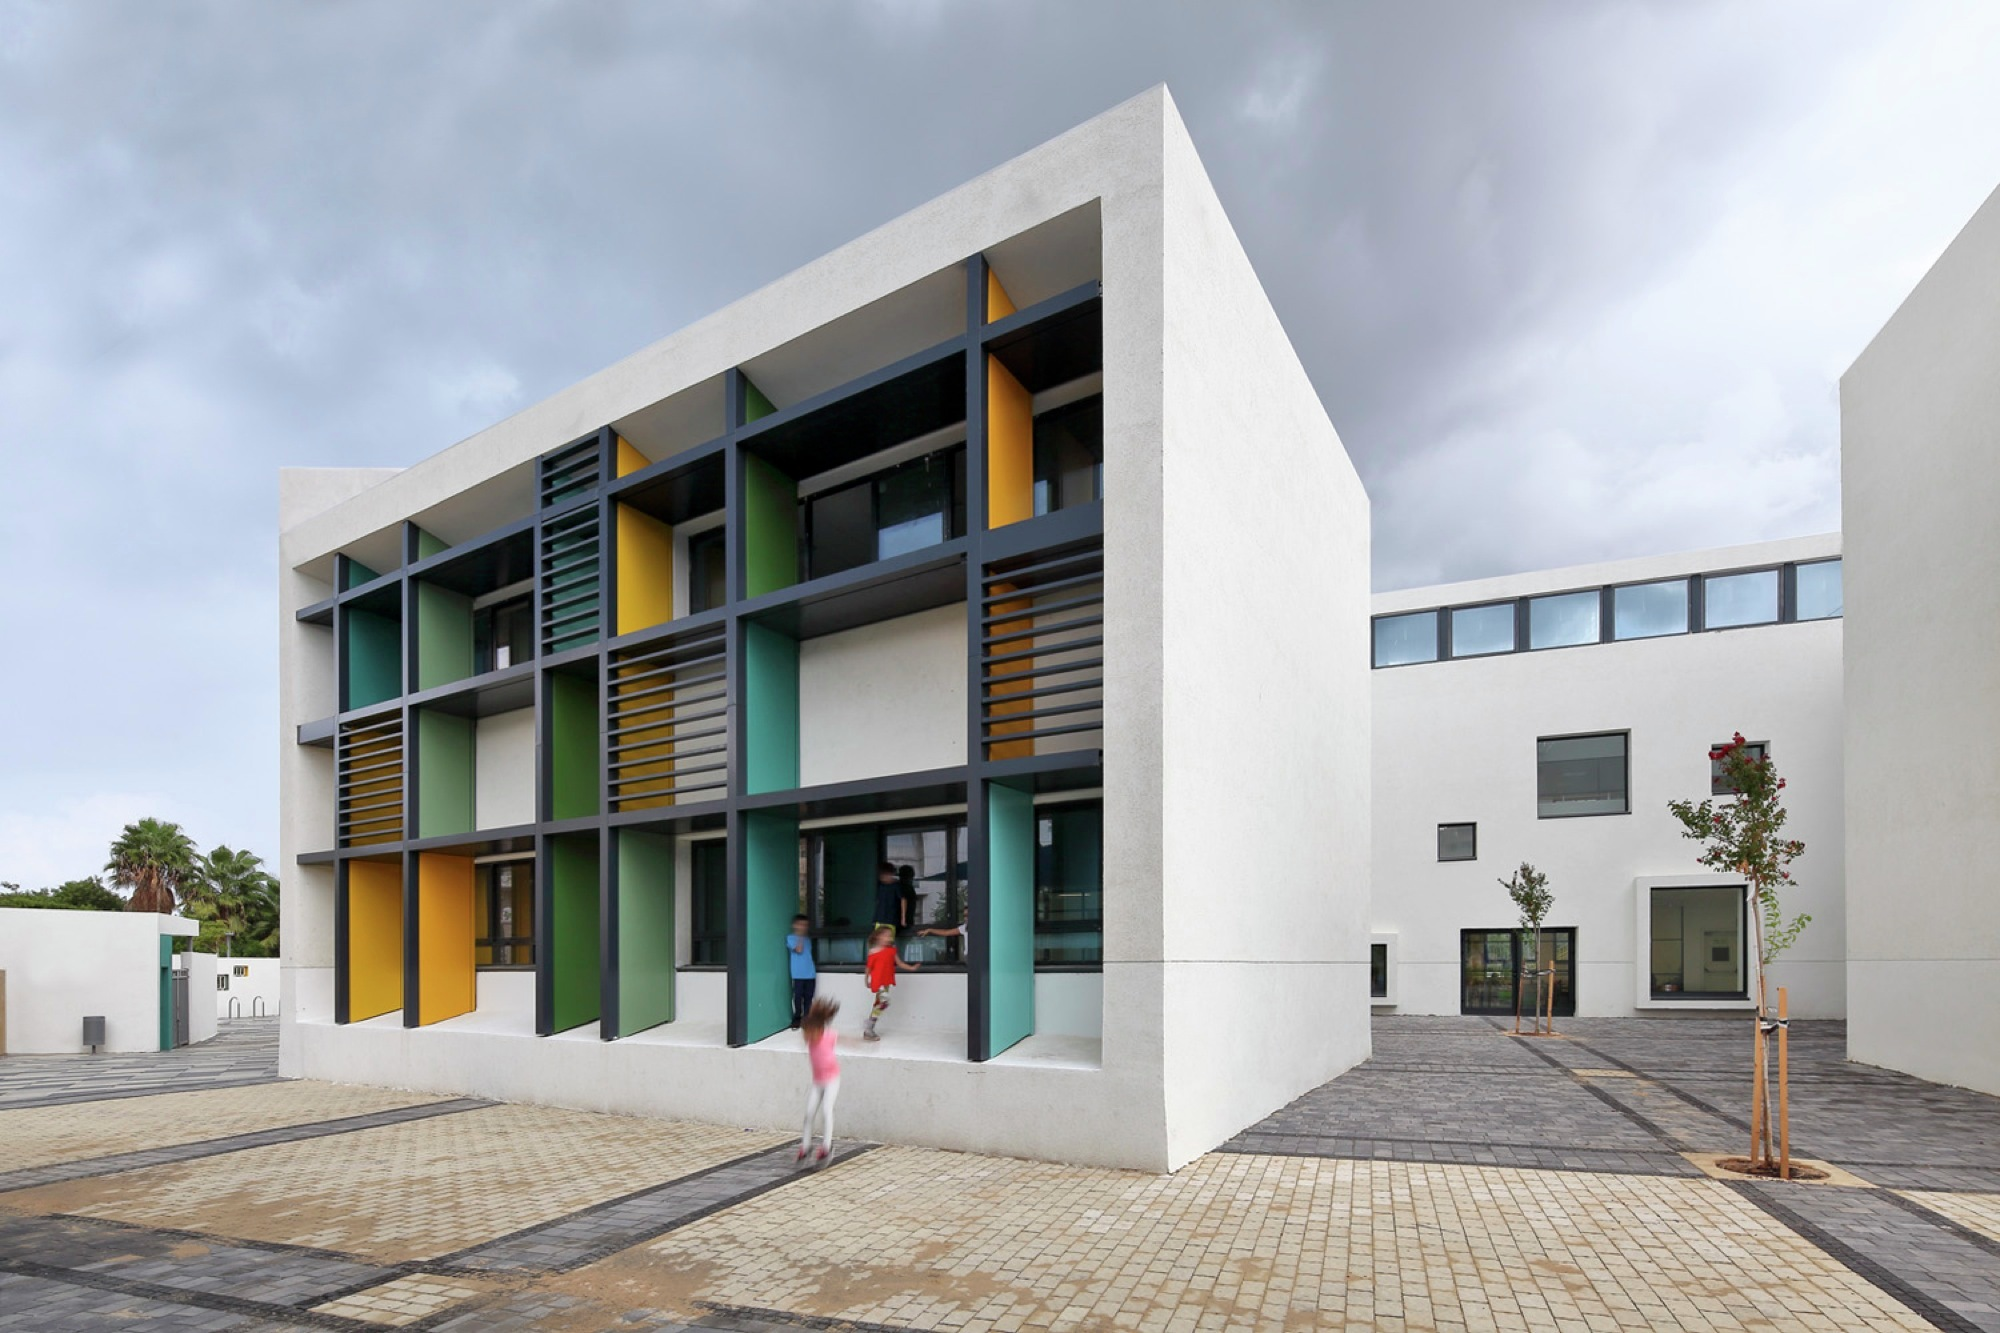 Architecture Elementary School elementary school in tel aviv / auerbach halevy architects | archdaily